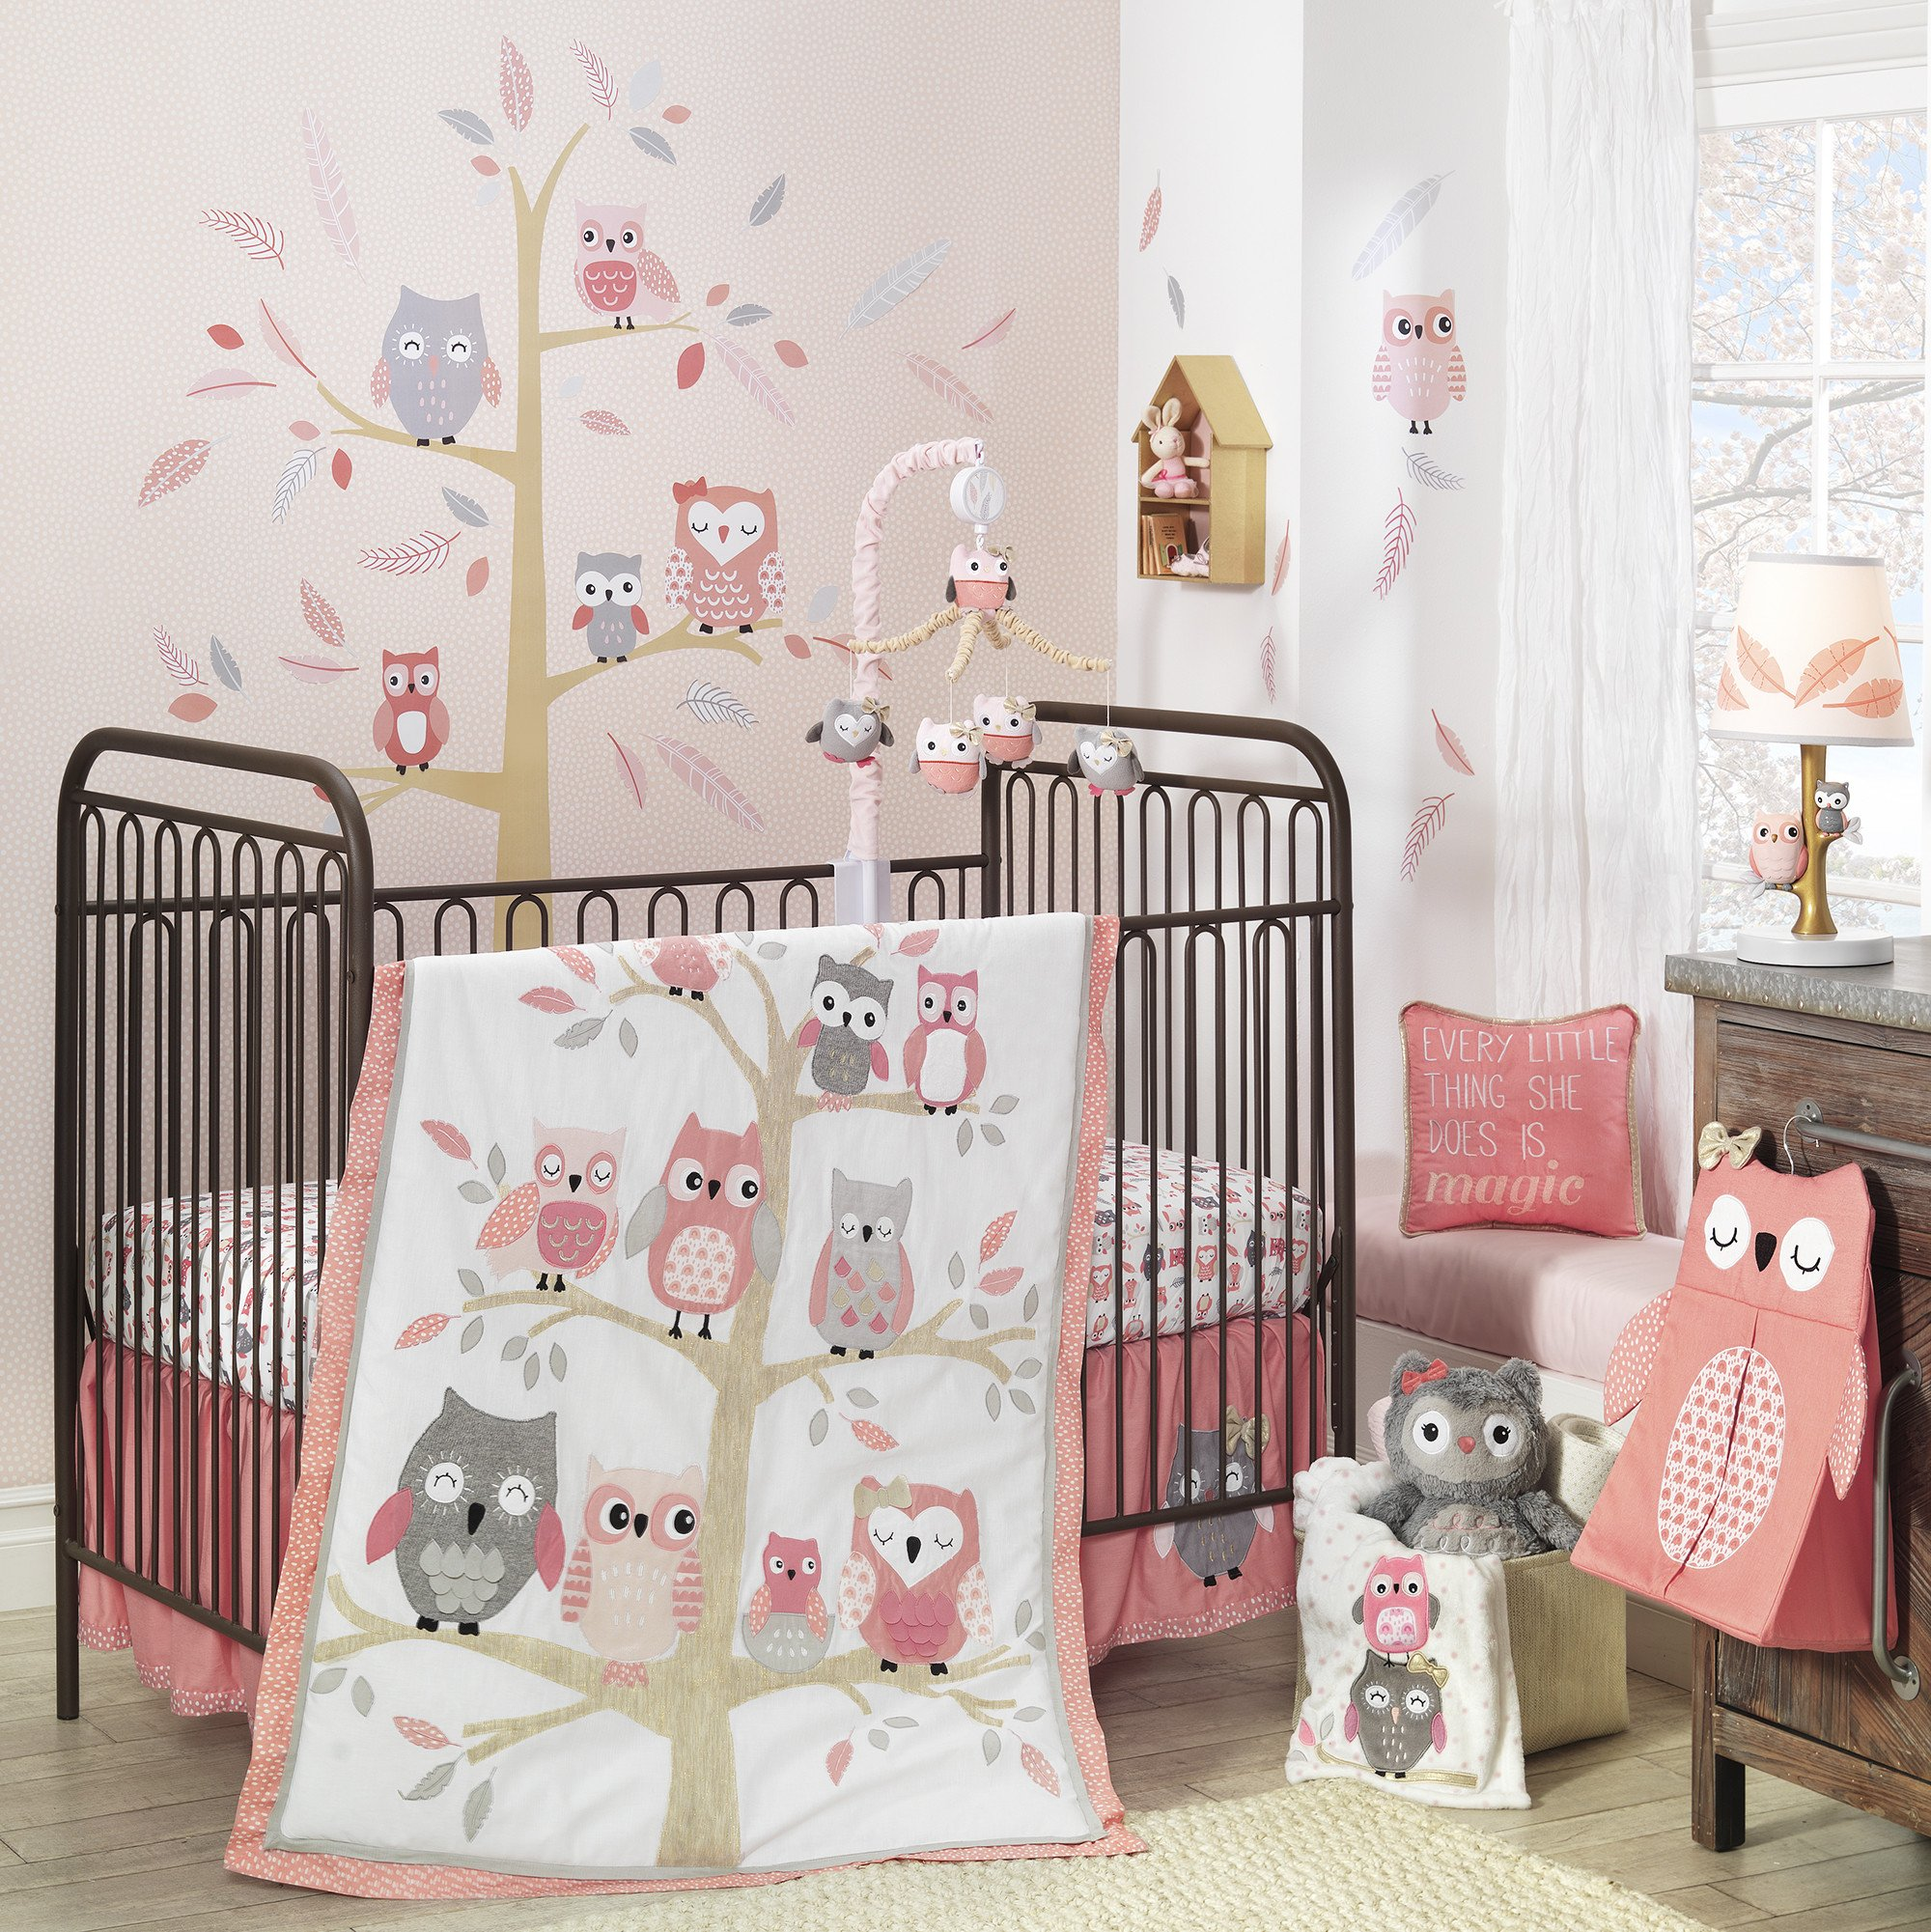 Baby Cradle Sheets Details About Lambs Ivy Family Tree Pink Gray Owl 6 Piece Nursery Baby Crib Bedding Set